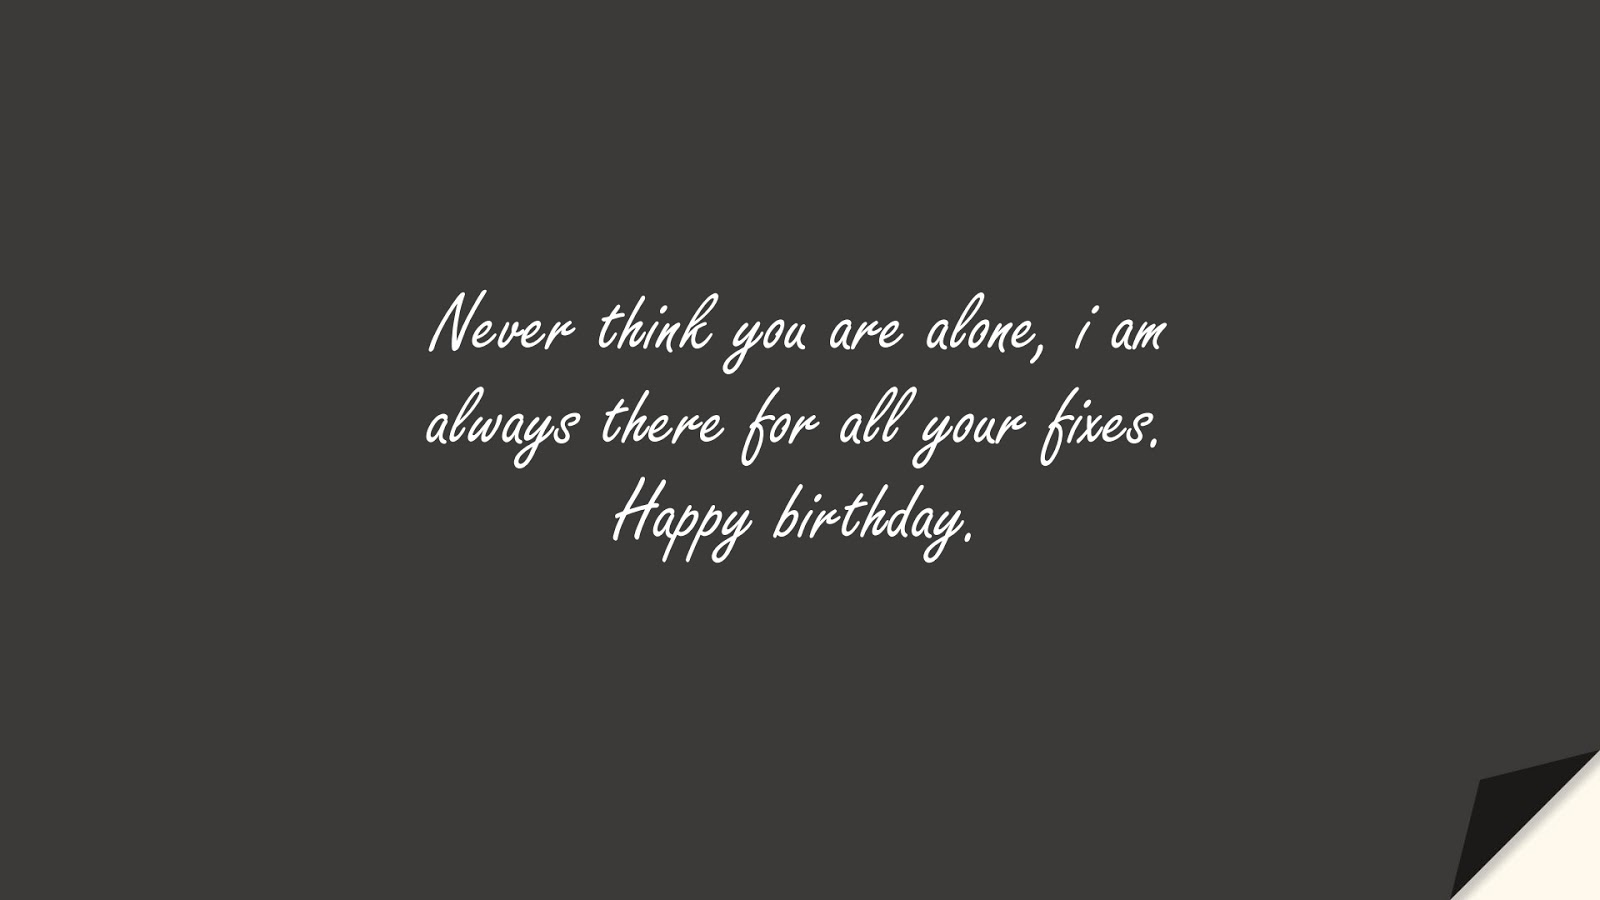 Never think you are alone, i am always there for all your fixes. Happy birthday.FALSE